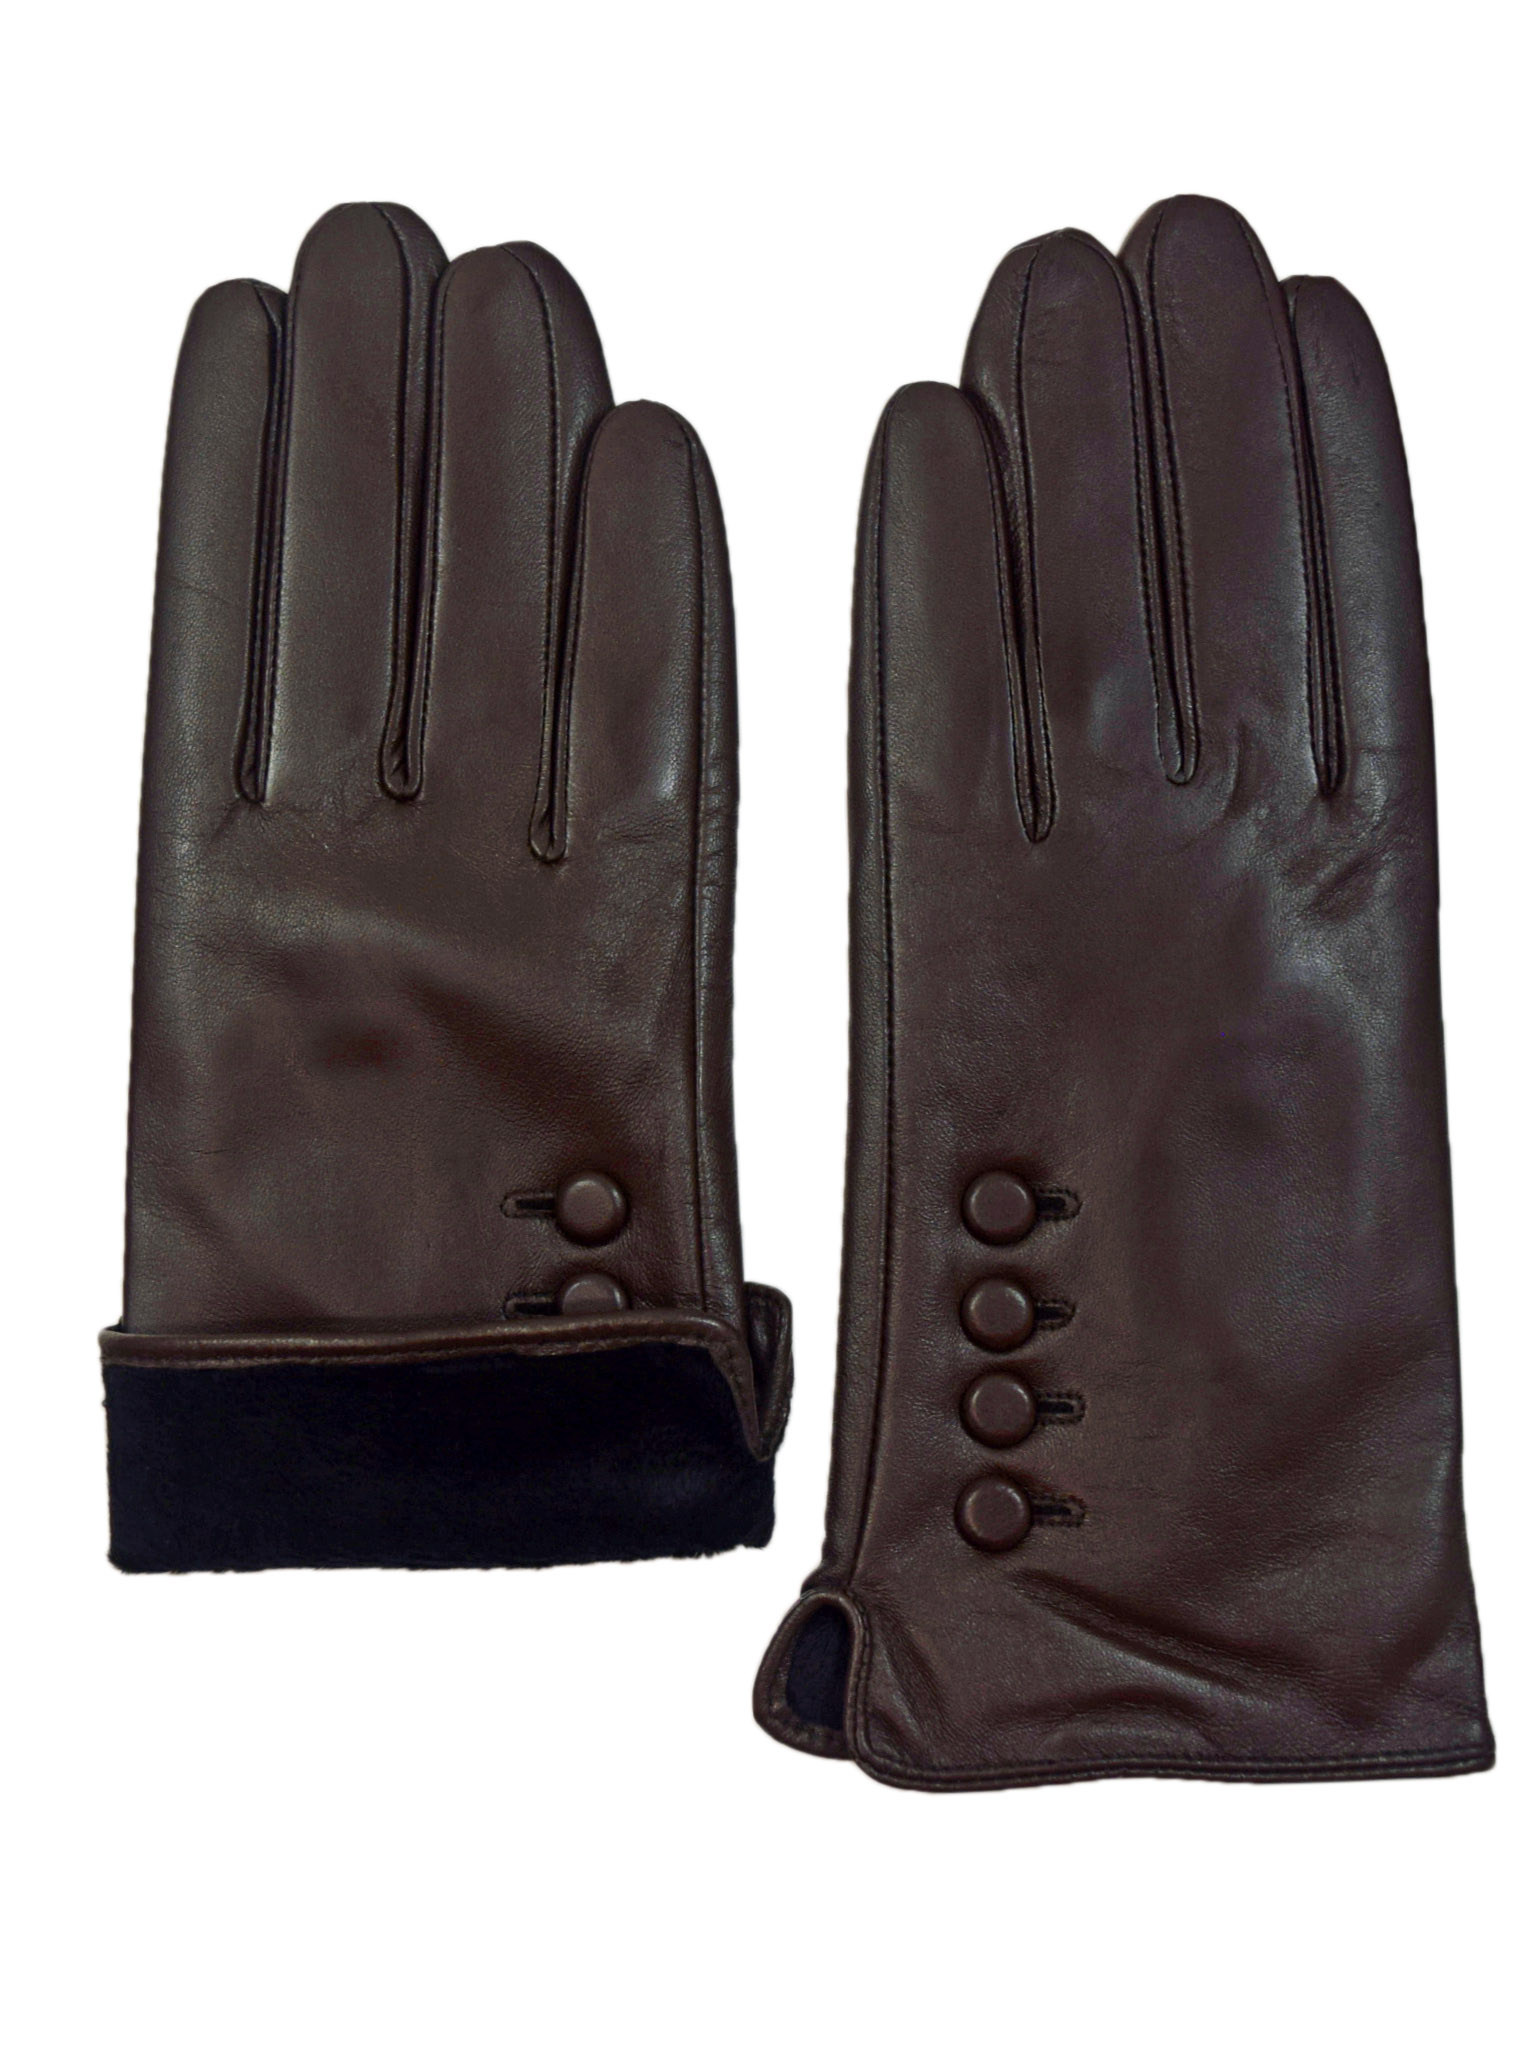 Giromy-Samoni-Womens-Warm-Winter-Plush-Lined-Leather-Driving-Gloves-Brown thumbnail 18